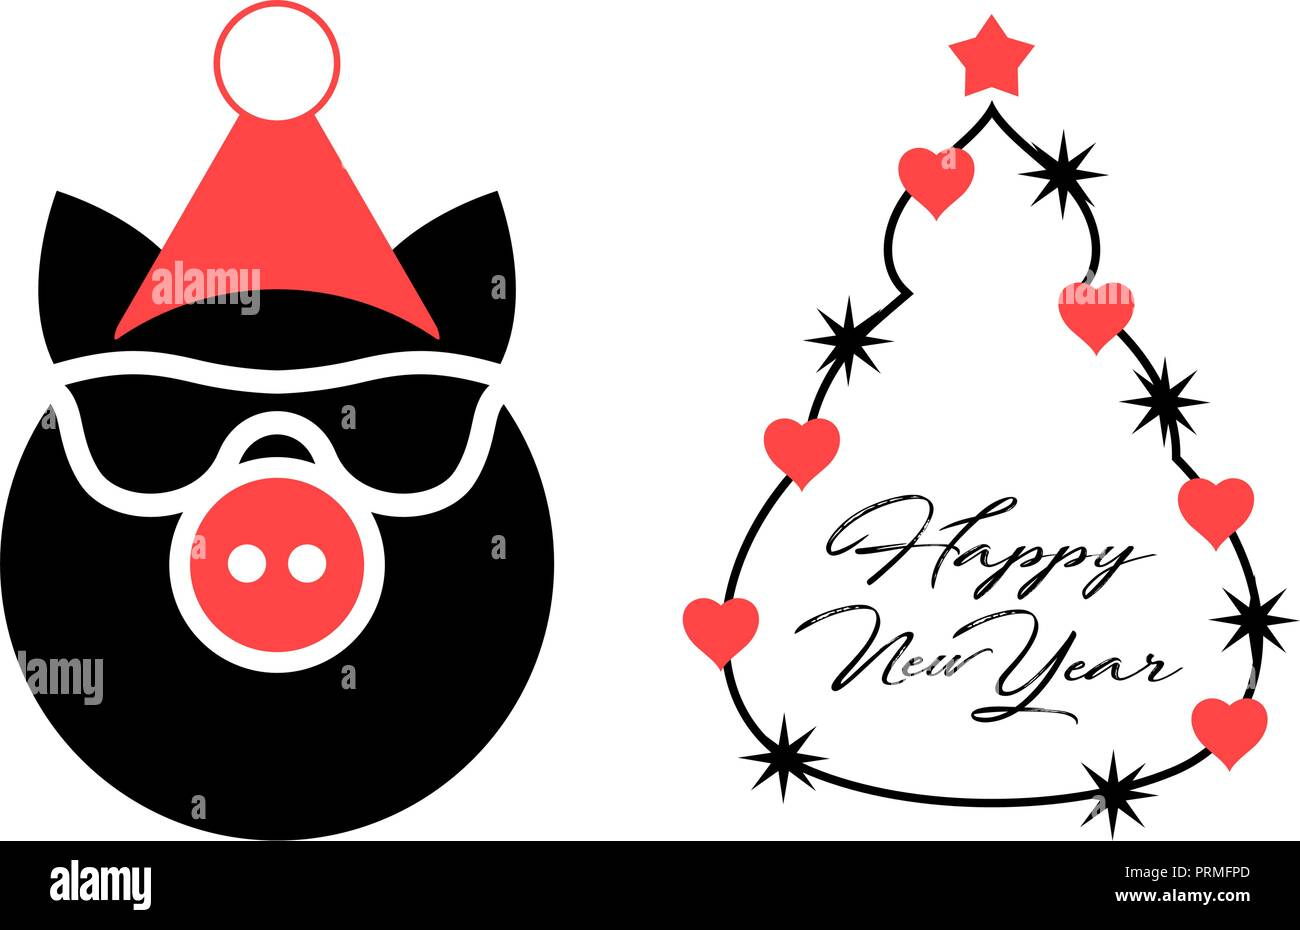 year of the pig 2019 vector christmas greeting card template merry christmas and happy new year design elements resource for creating postcards